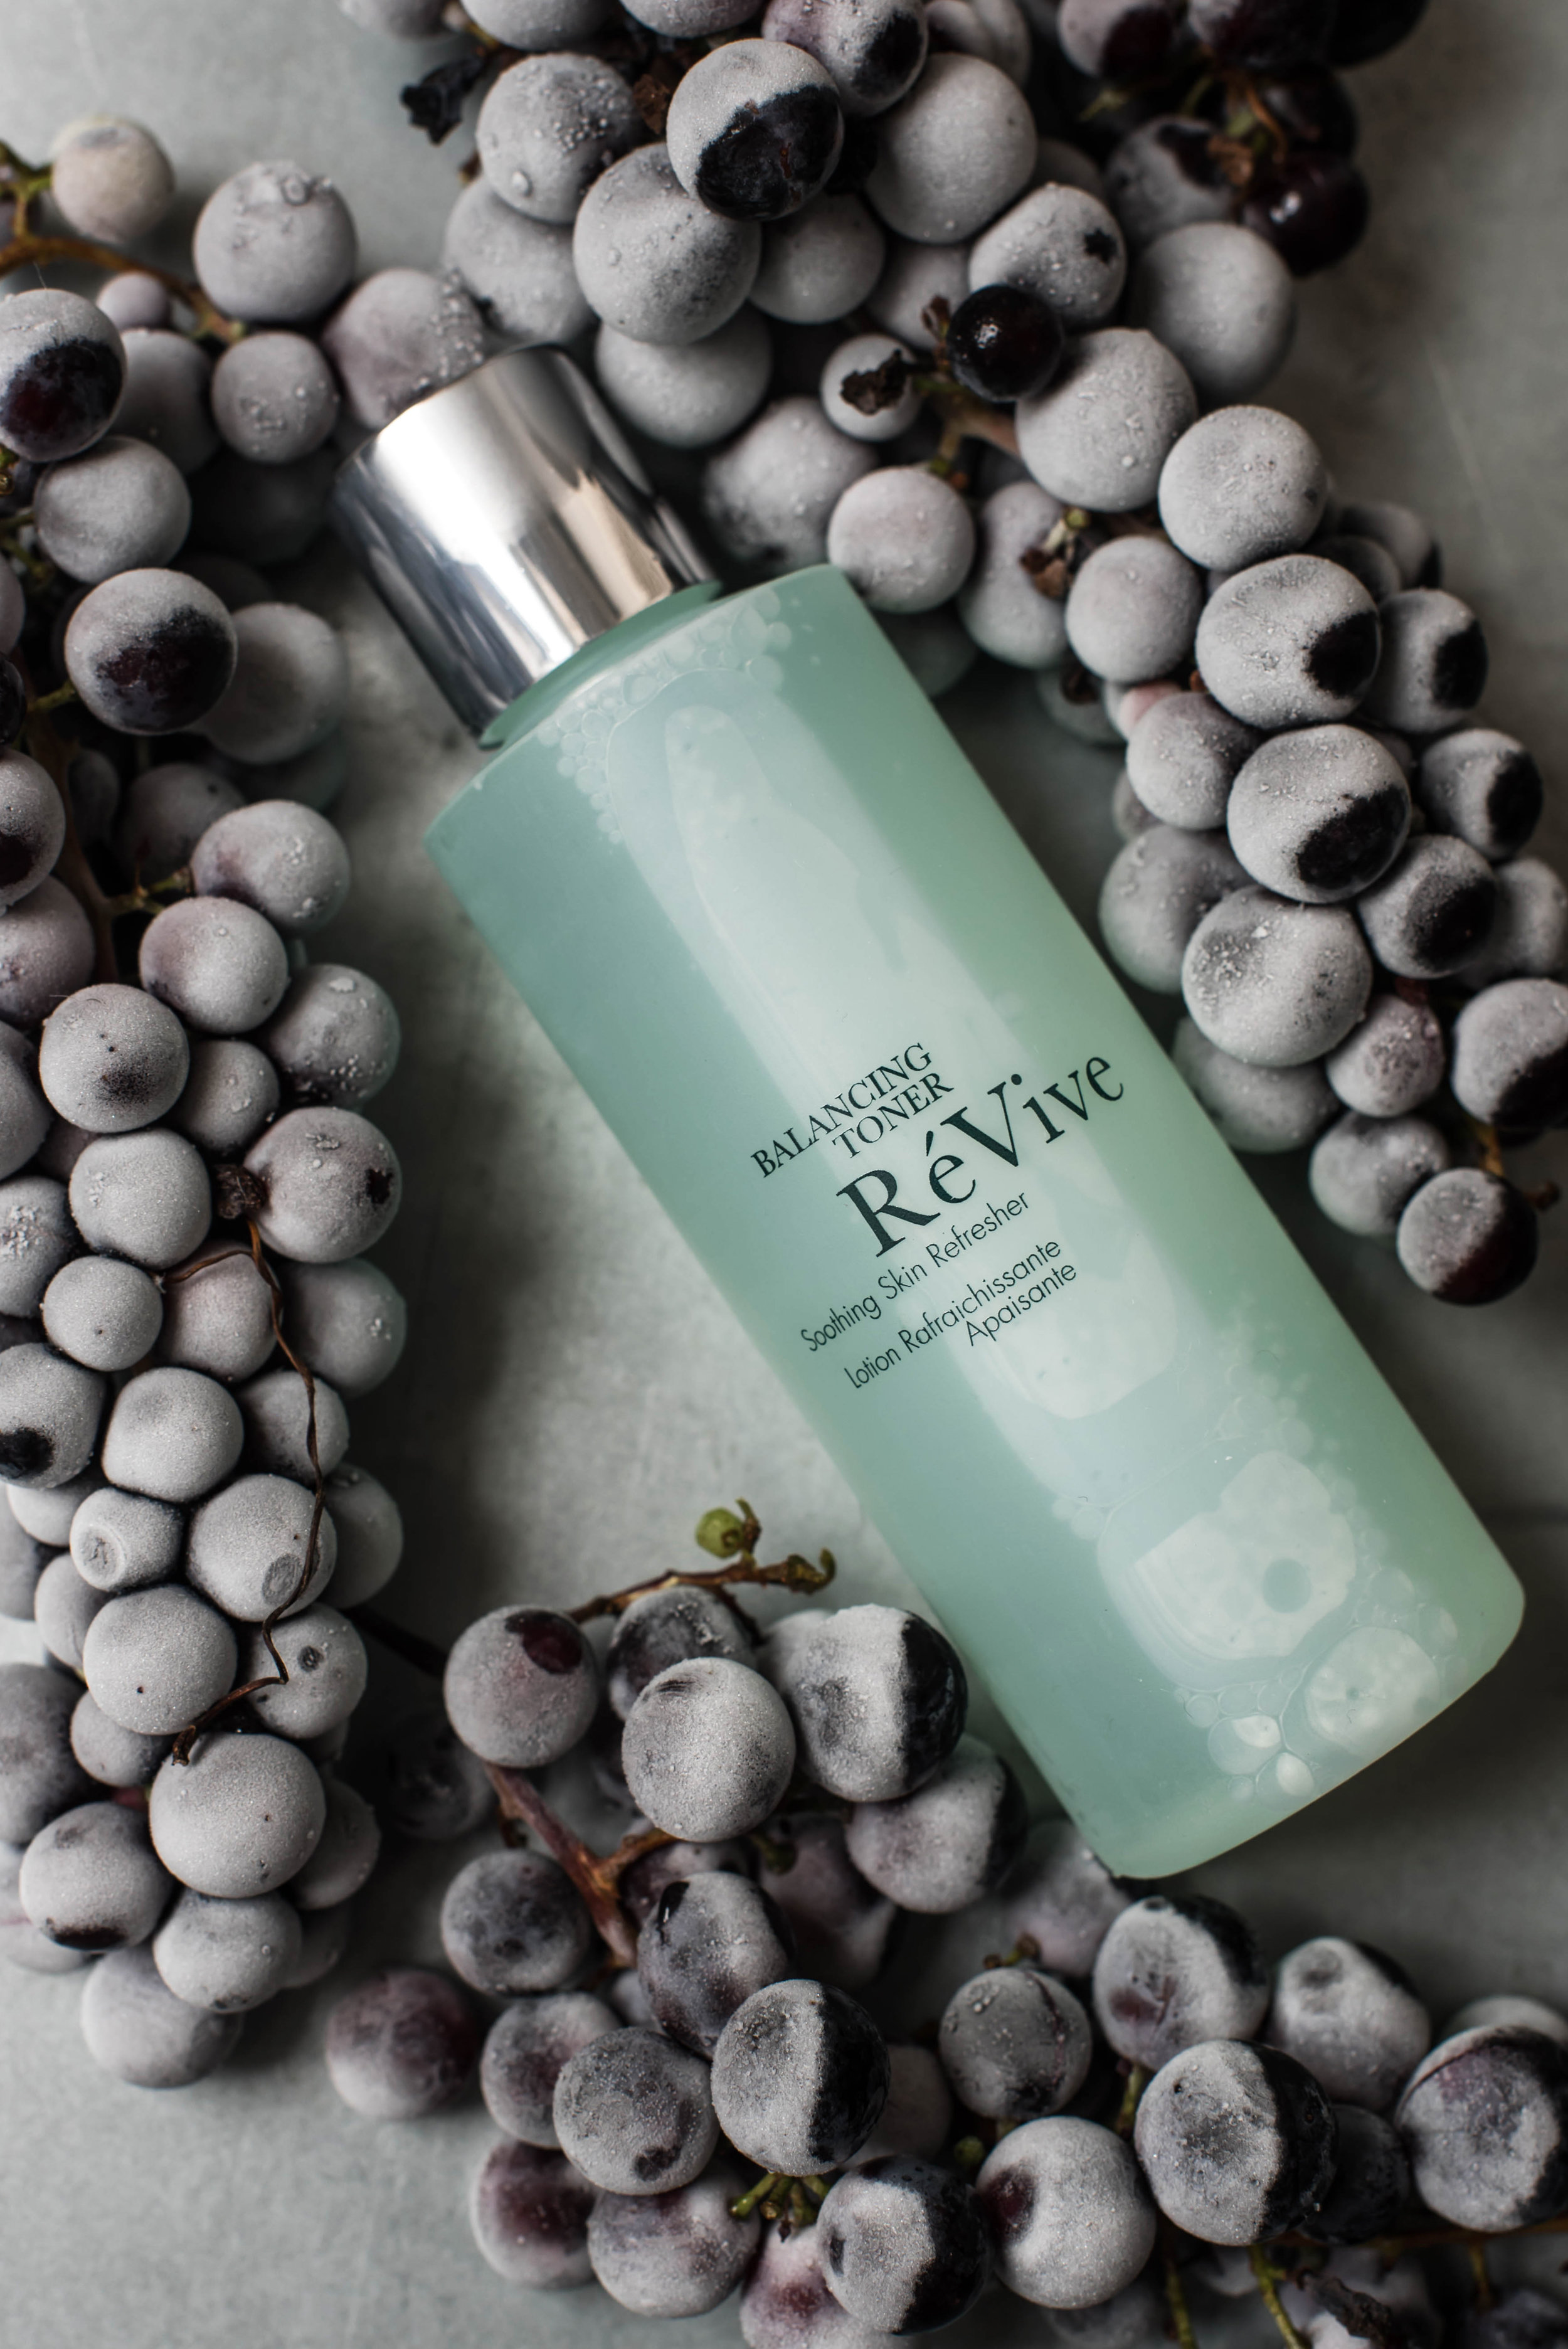 ROSE & & IVY Journal Skin Refresh A Toner to Pick Up Tired Skin